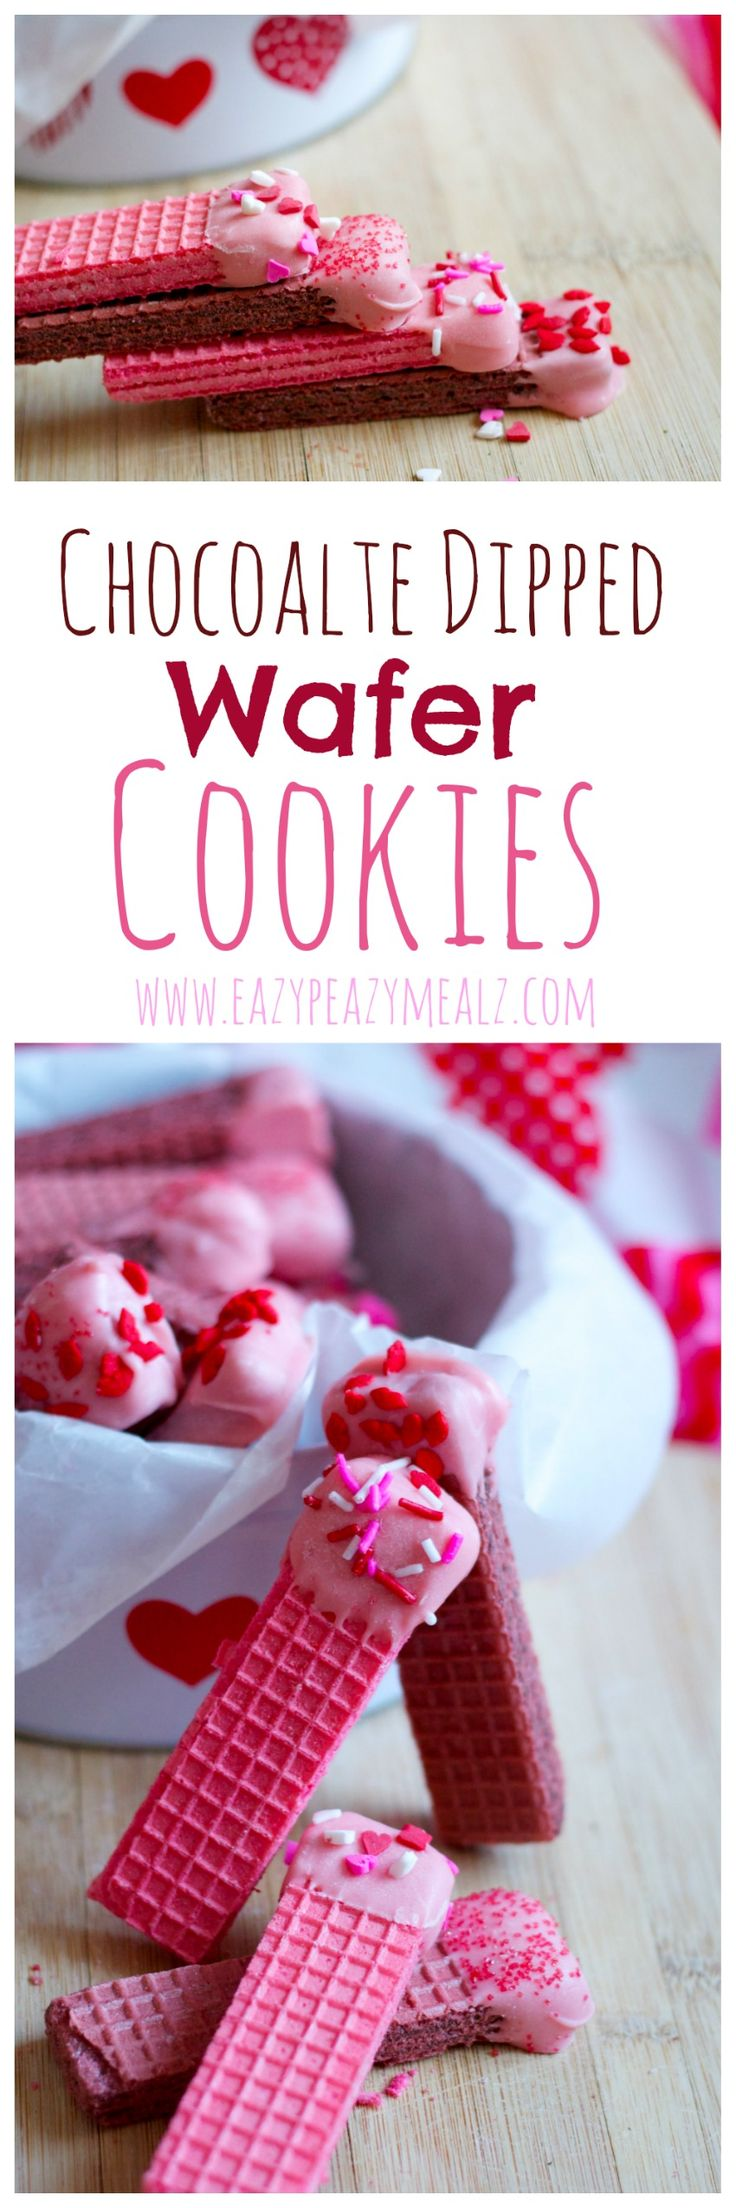 Chocolate Dipped Wafer Cookies: These little wafer cookies are both delicious and easy to make. Perfect for a Valentine's Day activity with kids. -Eazy Peazy Mealz